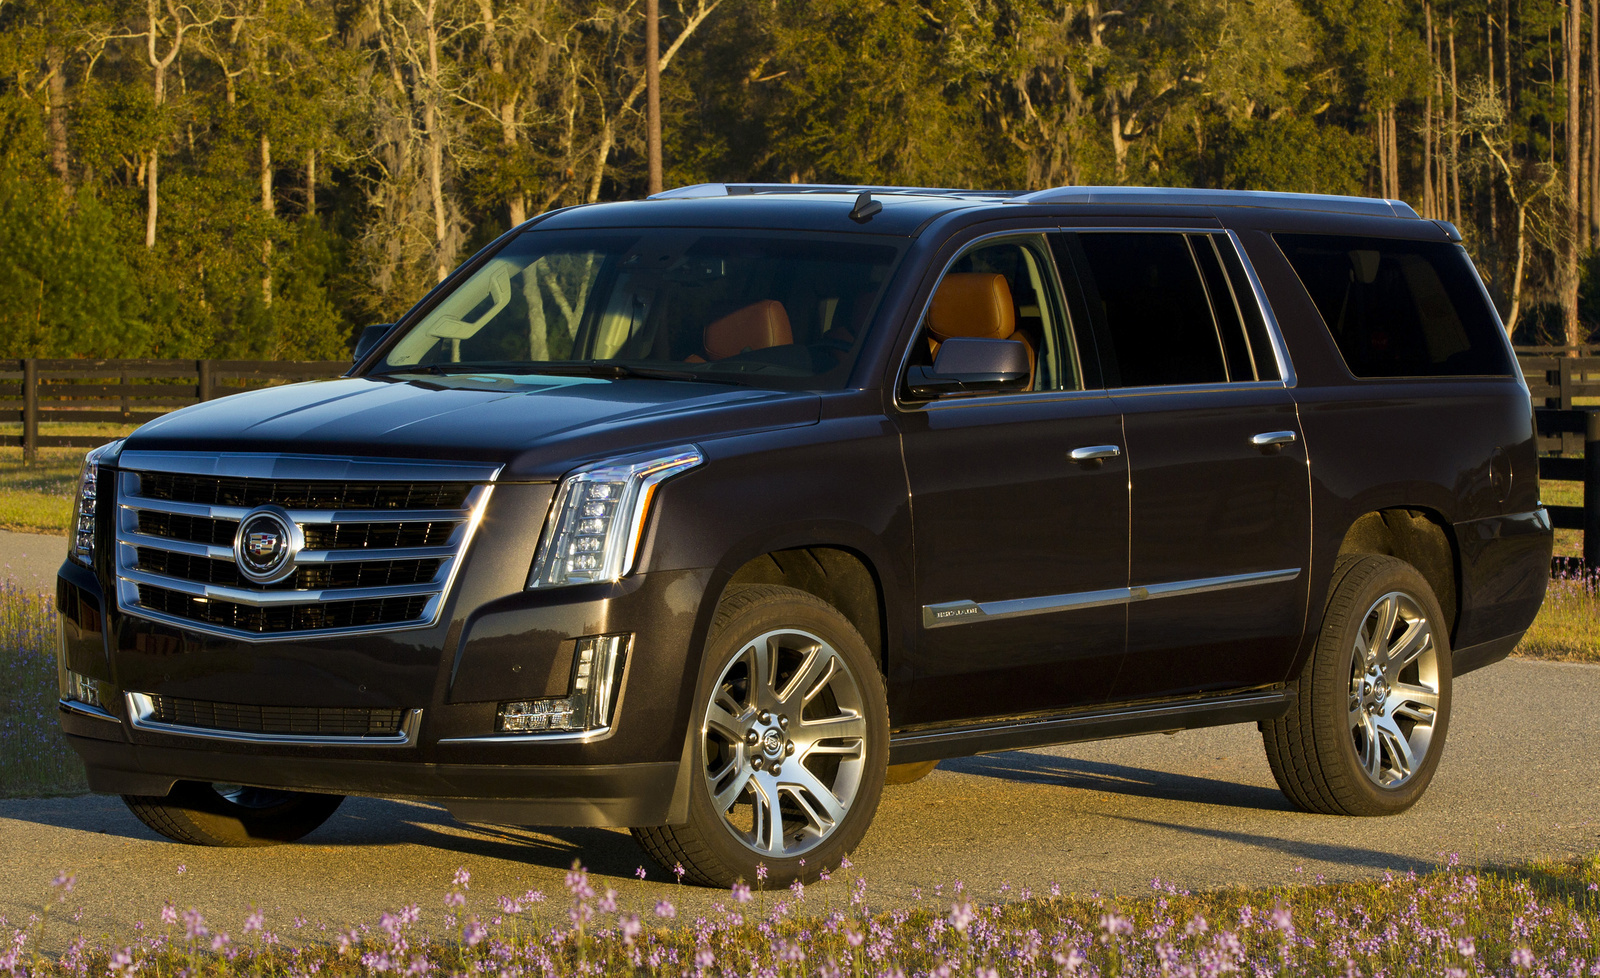 Cadillac cadillac escalade weight : 2015 Cadillac Escalade - Overview - CarGurus